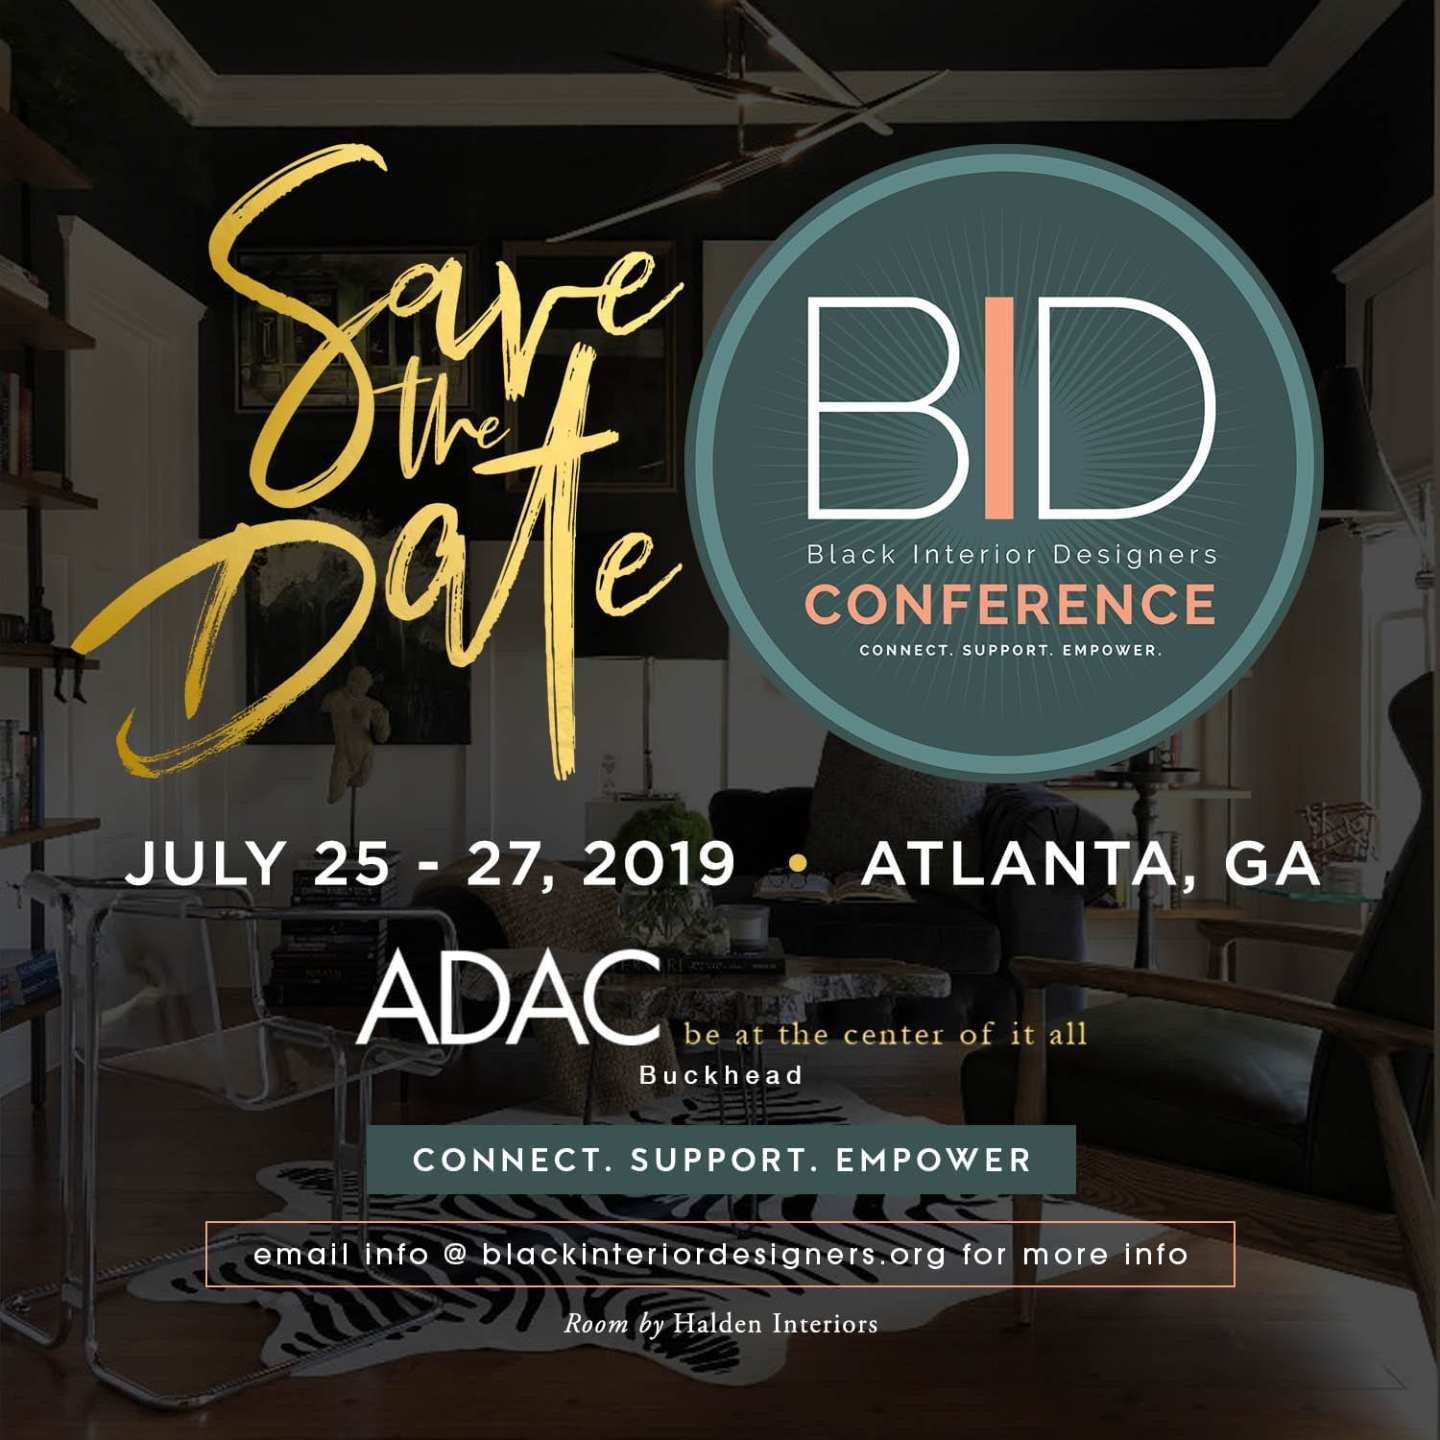 BID-2019-save-the-date Southern Design Is on the Rise with Black Interior Designers at the Forefront